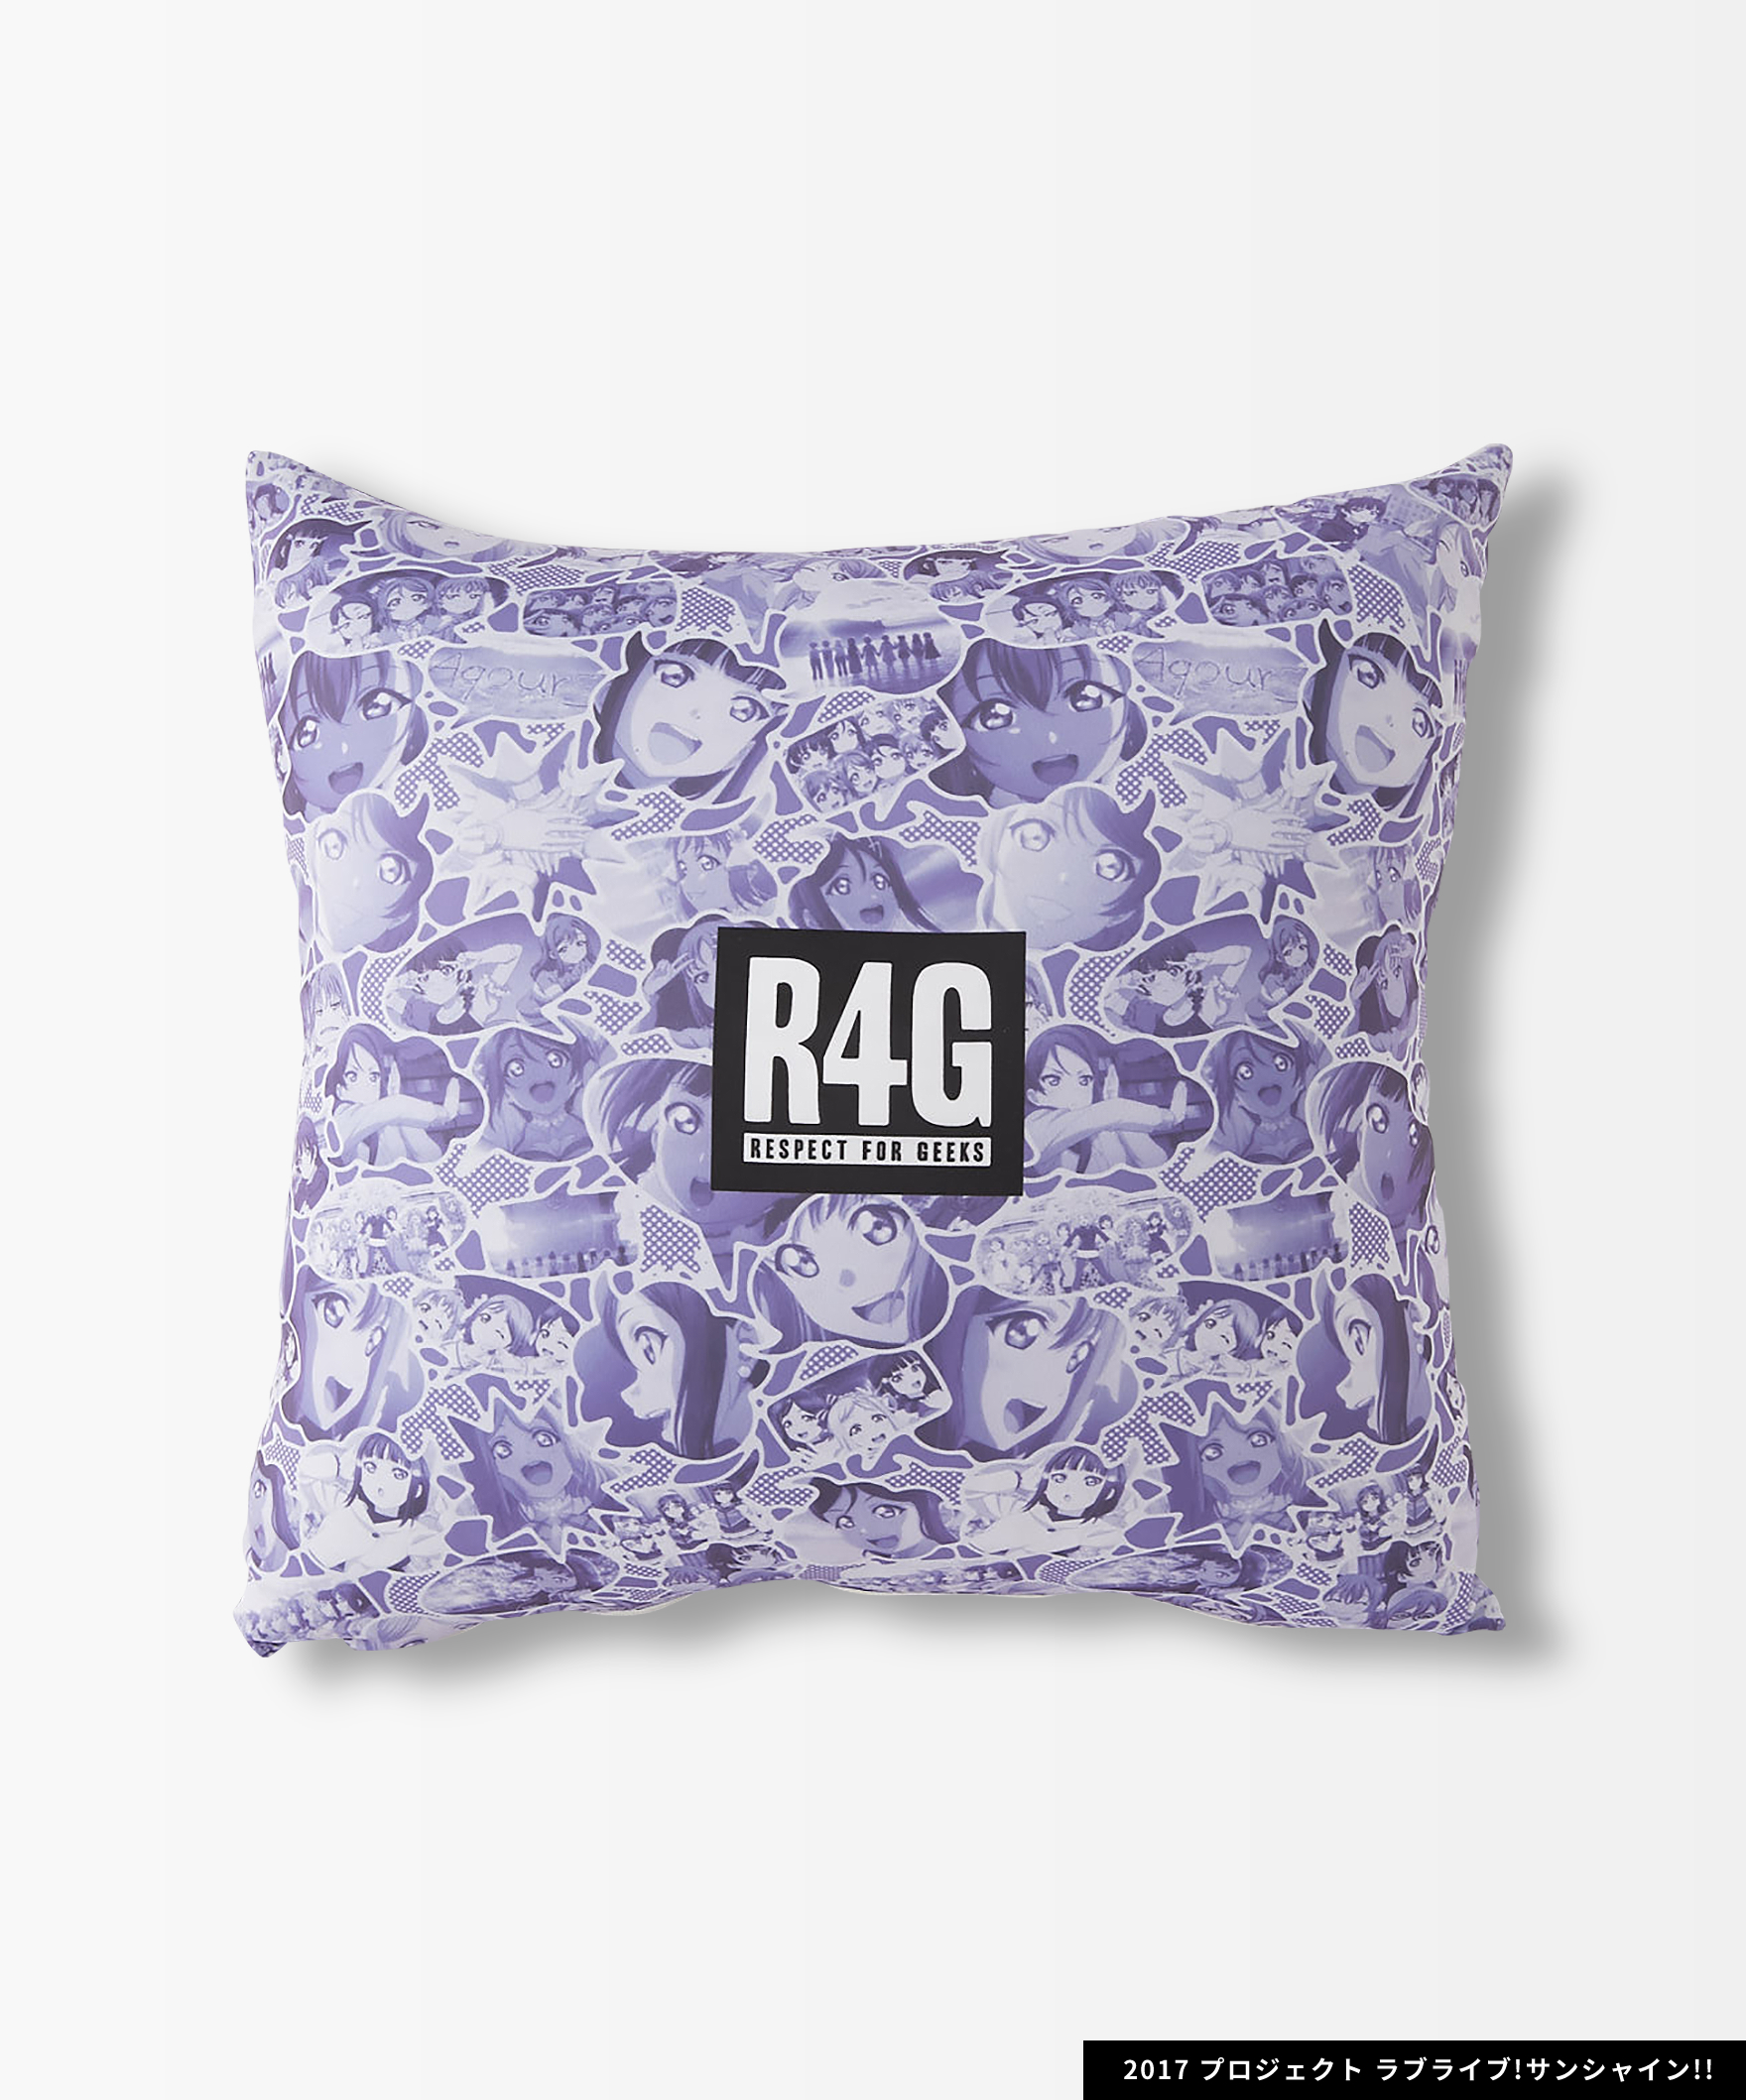 Aqours×R4G Cushion Cover(PUR)